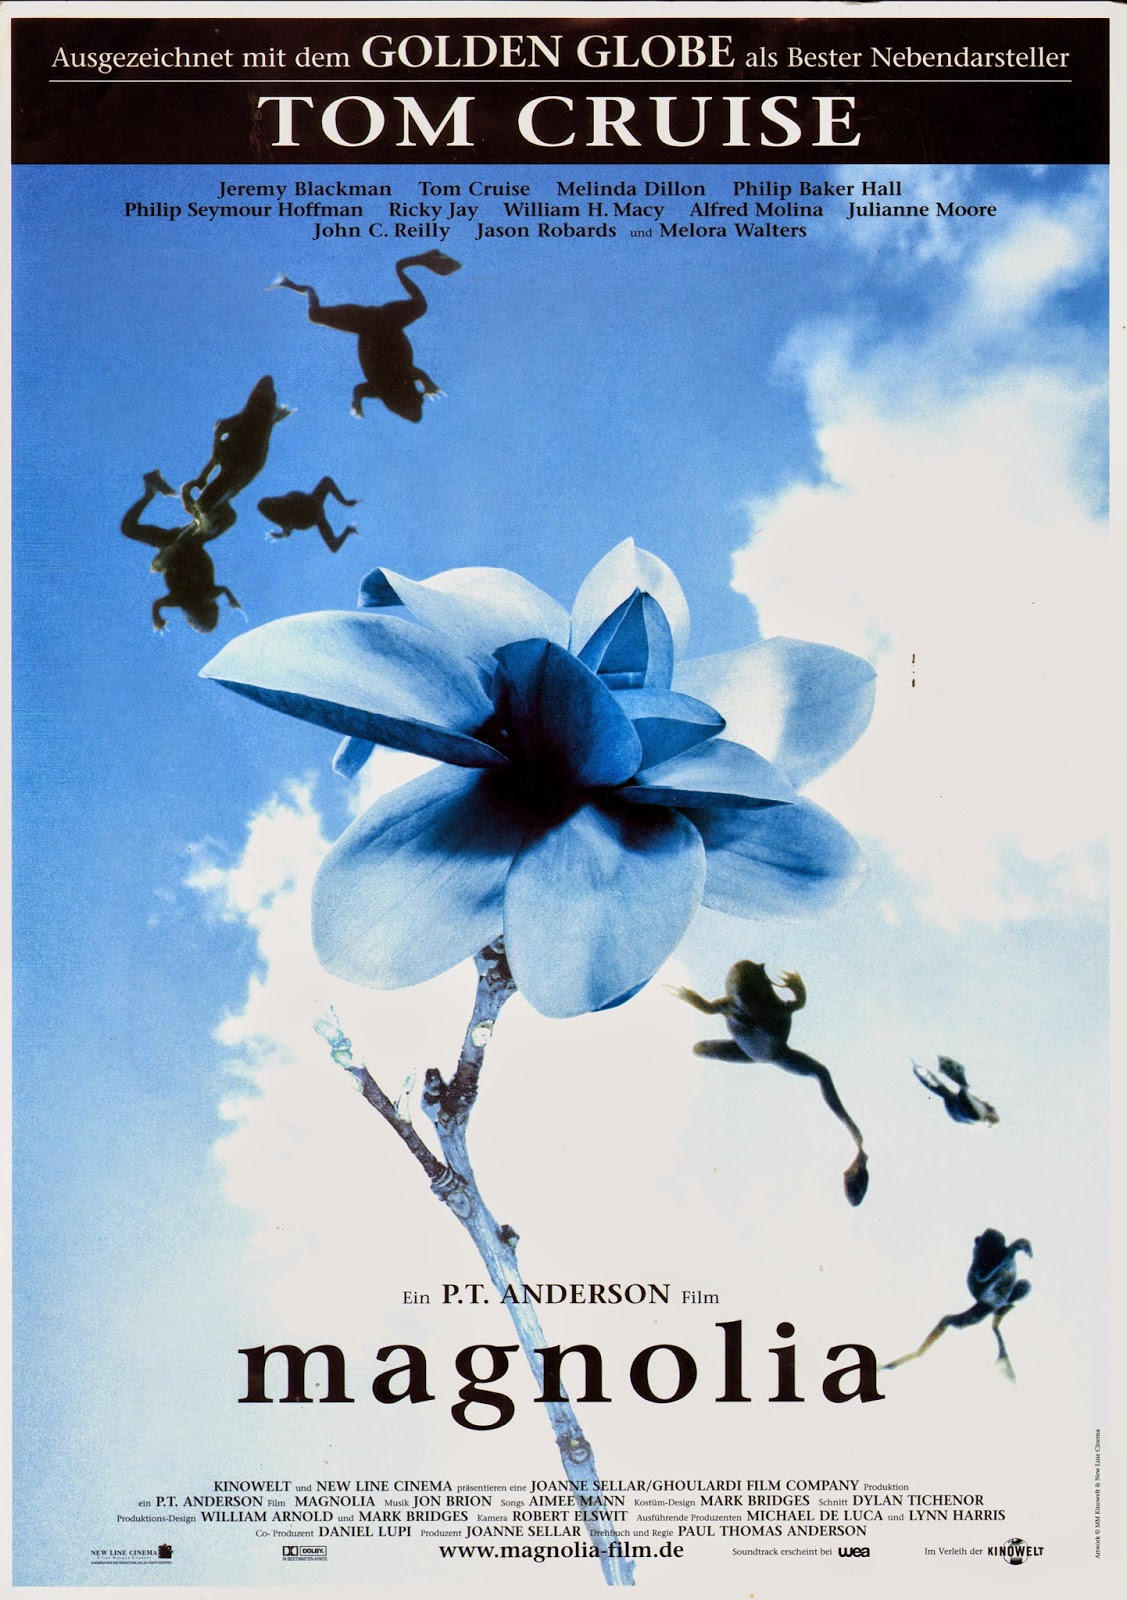 magnolia dir paul thomas anderson discreet charms magnolia german poster by mm kinowelt and new line cinema via carteles peliculas click the poster for a larger image